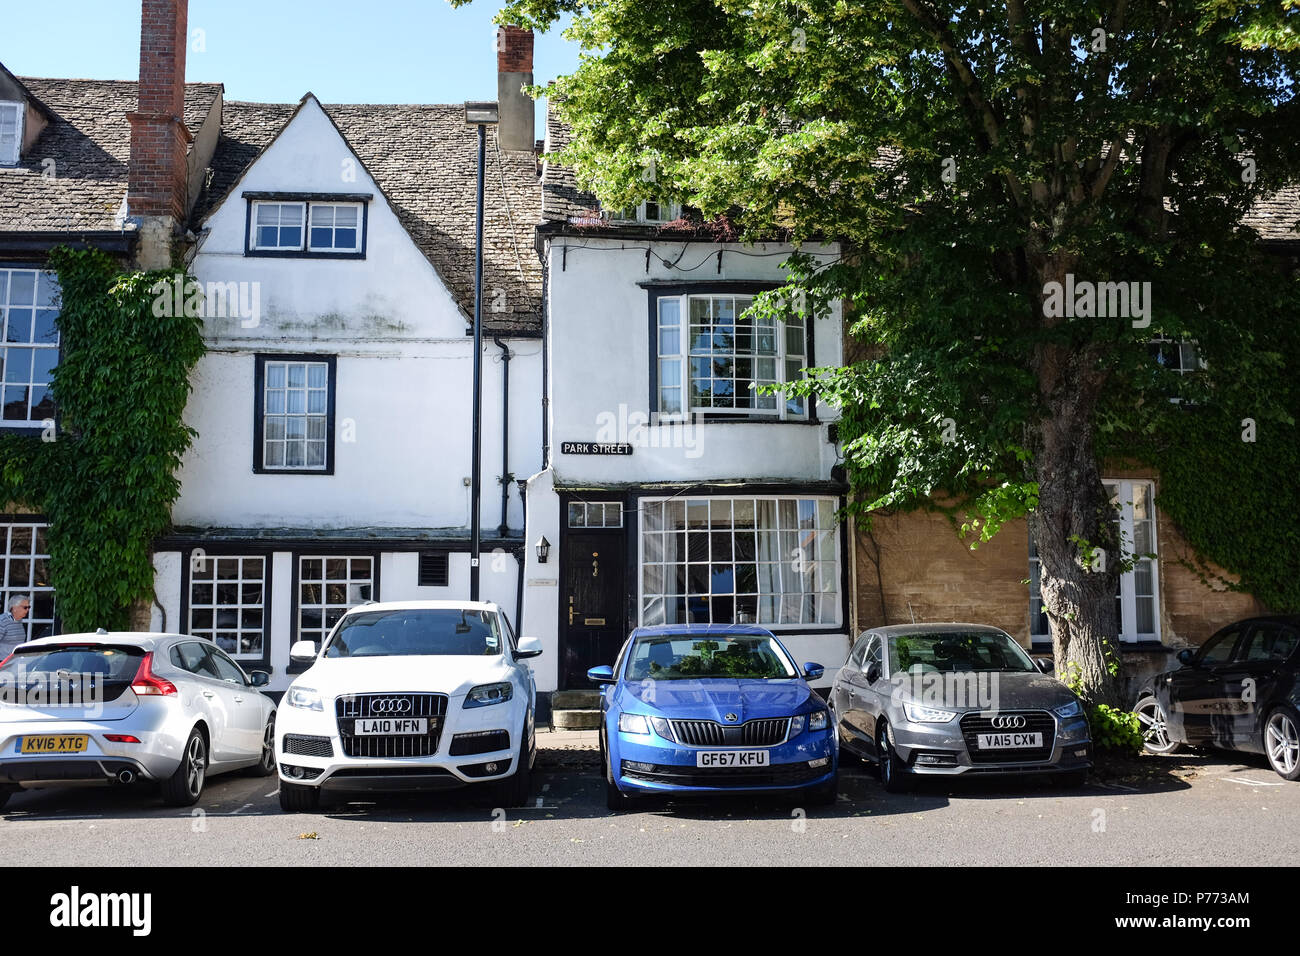 Park Street in quaint small Oxfordshire town of Woodstock . Woodstock is a historic town just to the north of Oxford. It grew up as a coach stop aroun - Stock Image